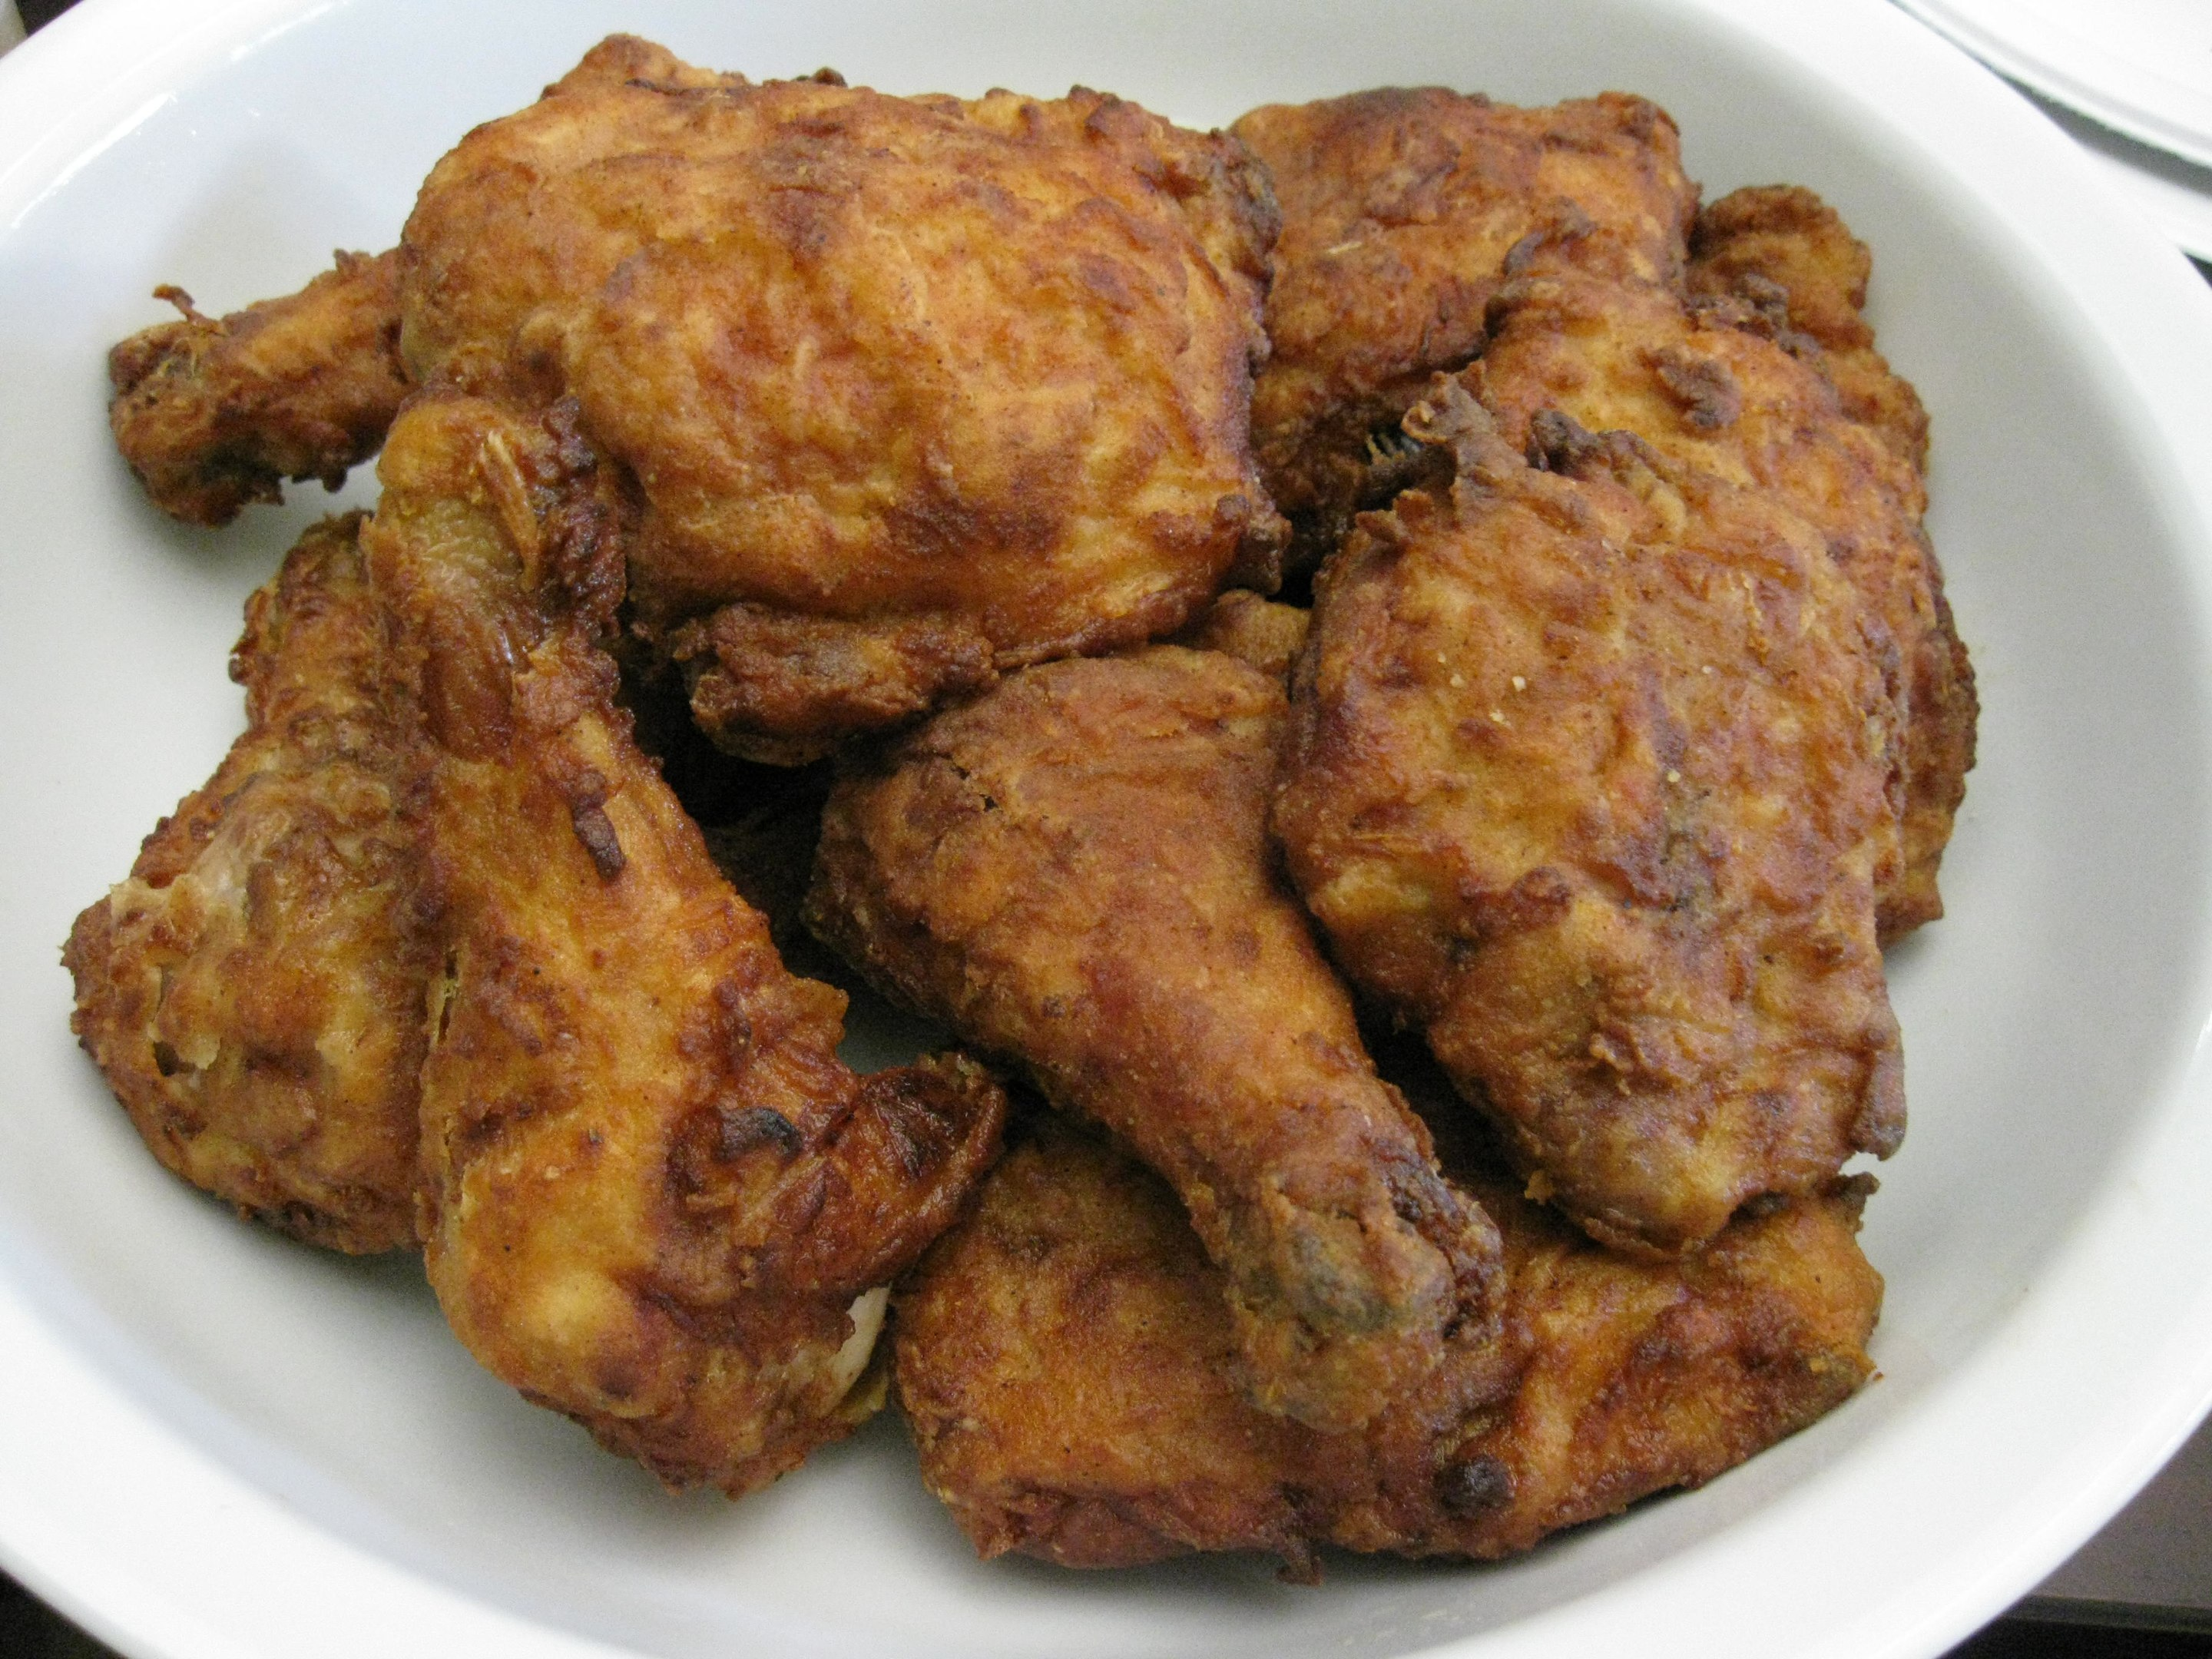 File:Fried chicken - Arnold Gatilao.jpg - Wikimedia Commons